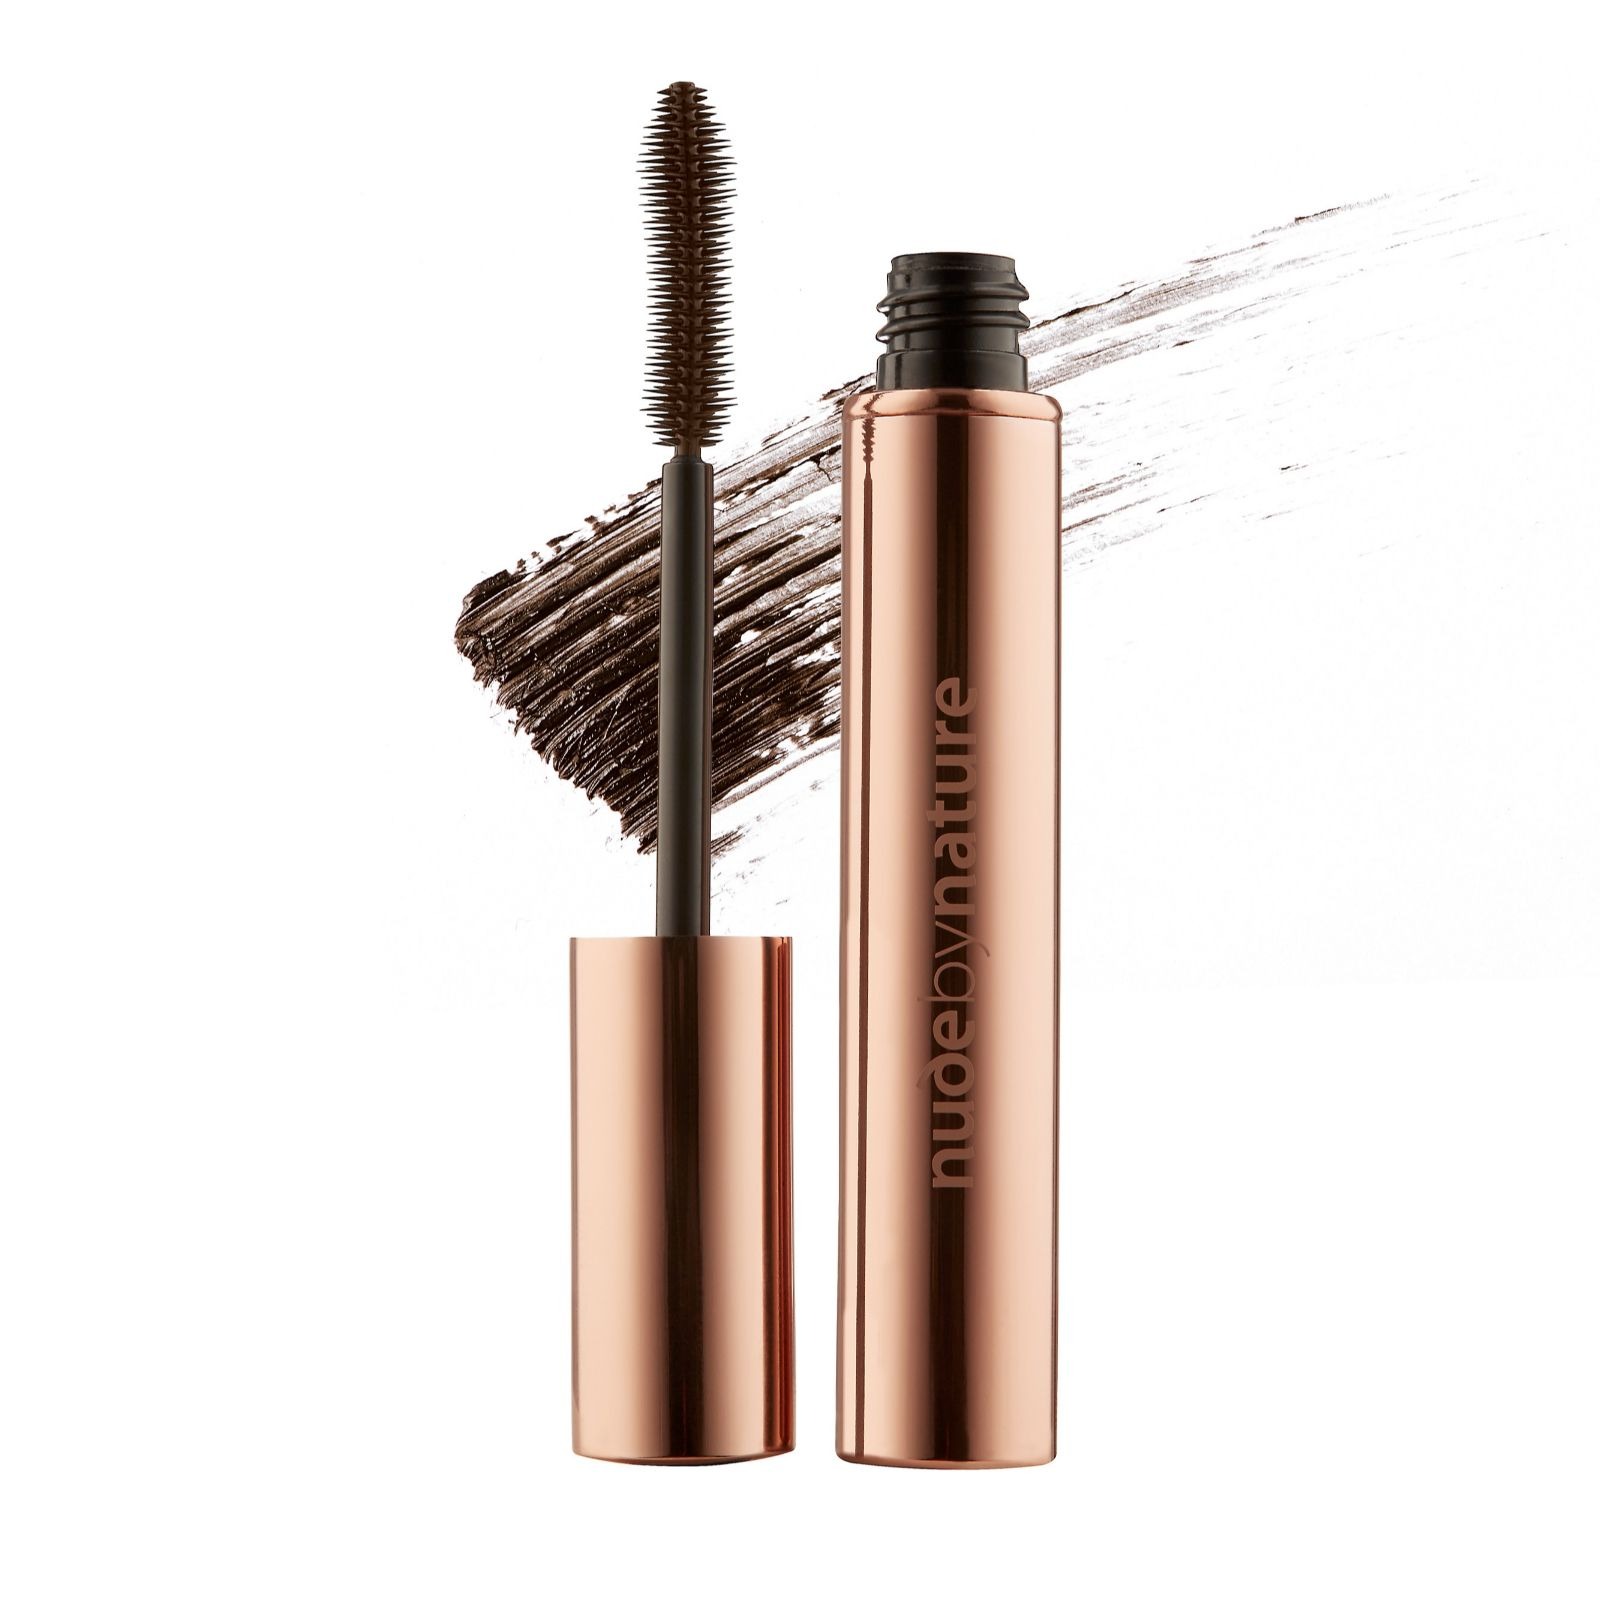 Nude by Natura Allure Defining Mascara - The Eczema Store